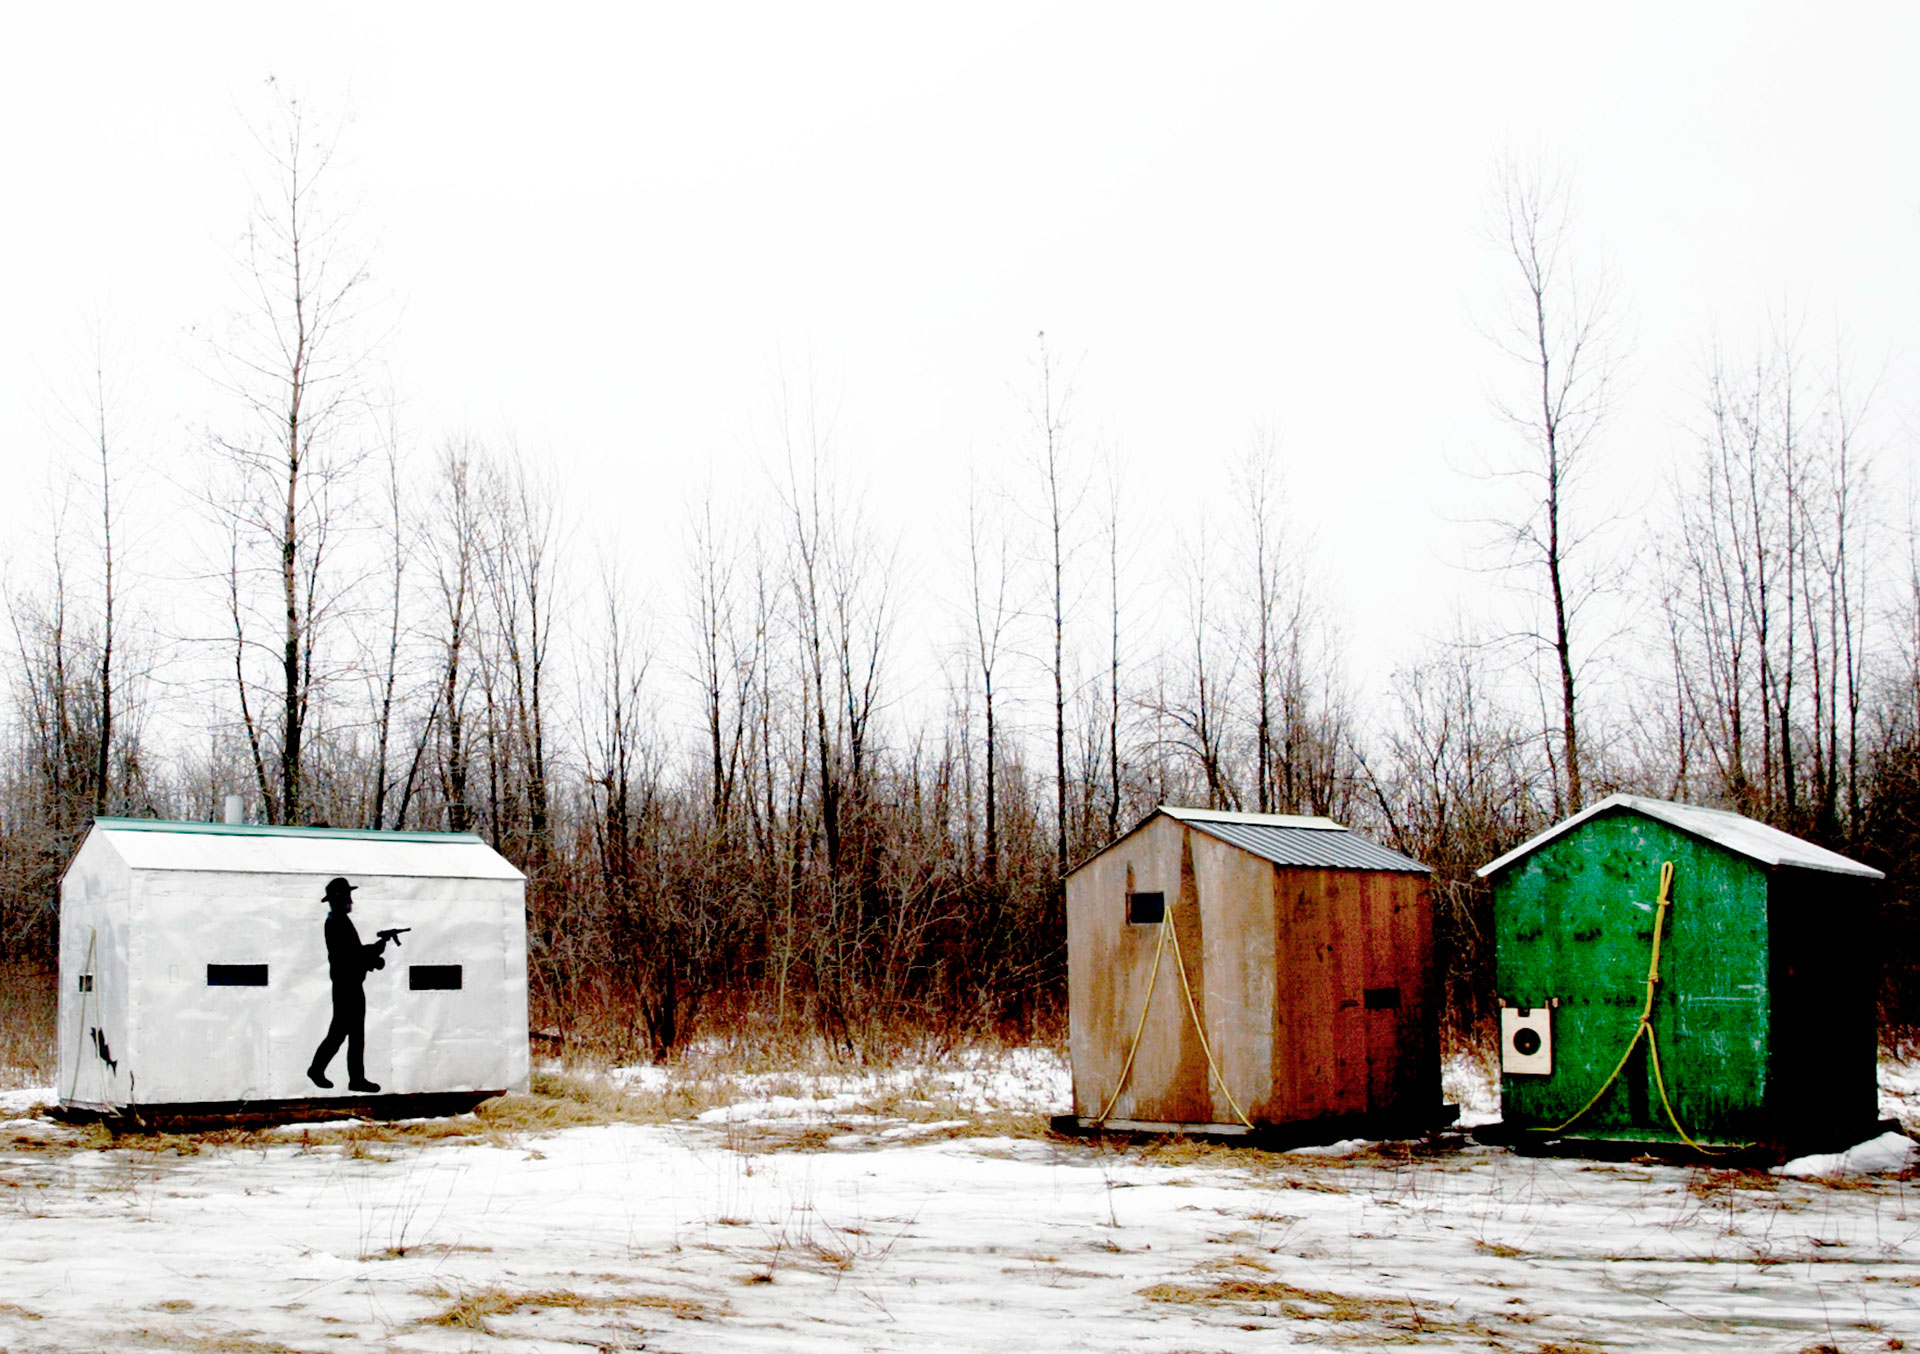 Jason Florio photography - color image of Ice Fishing Sheds, Canada, one shed has a silhouette of a cowboy holding a gun